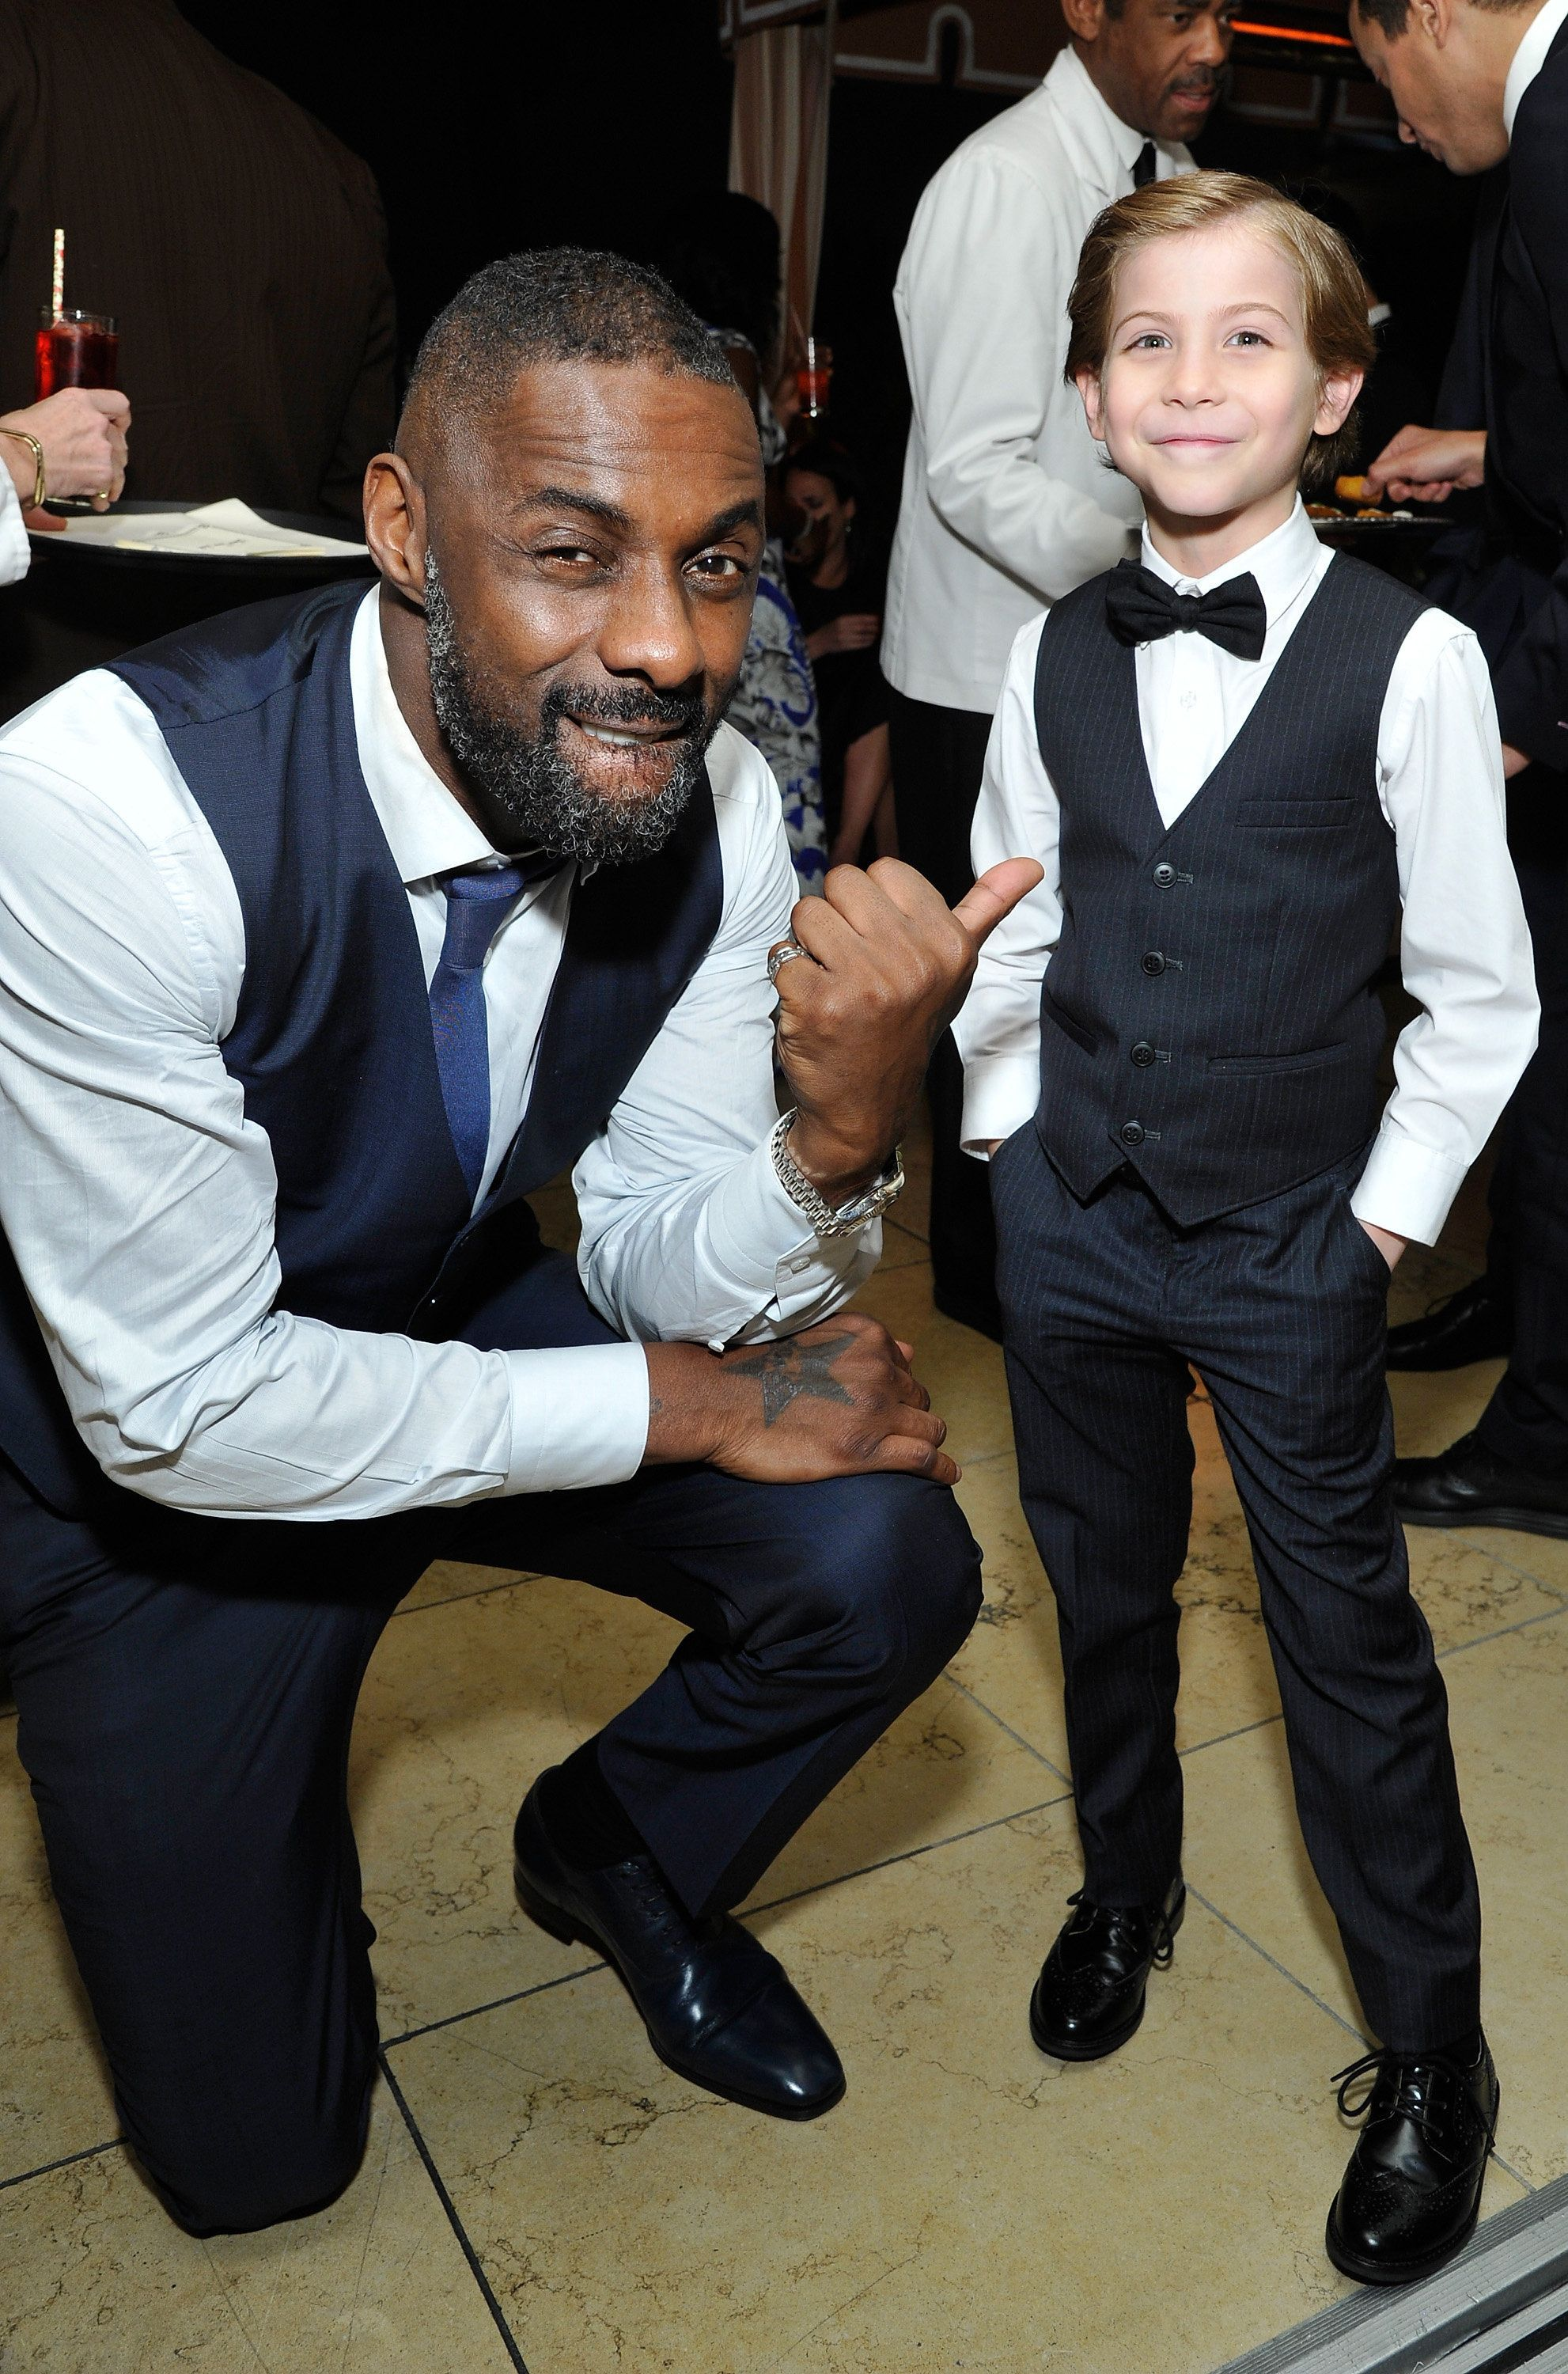 Idris Elba strikes a pose with Jacob Tremblay at the Weinstein-Netflix after-party.